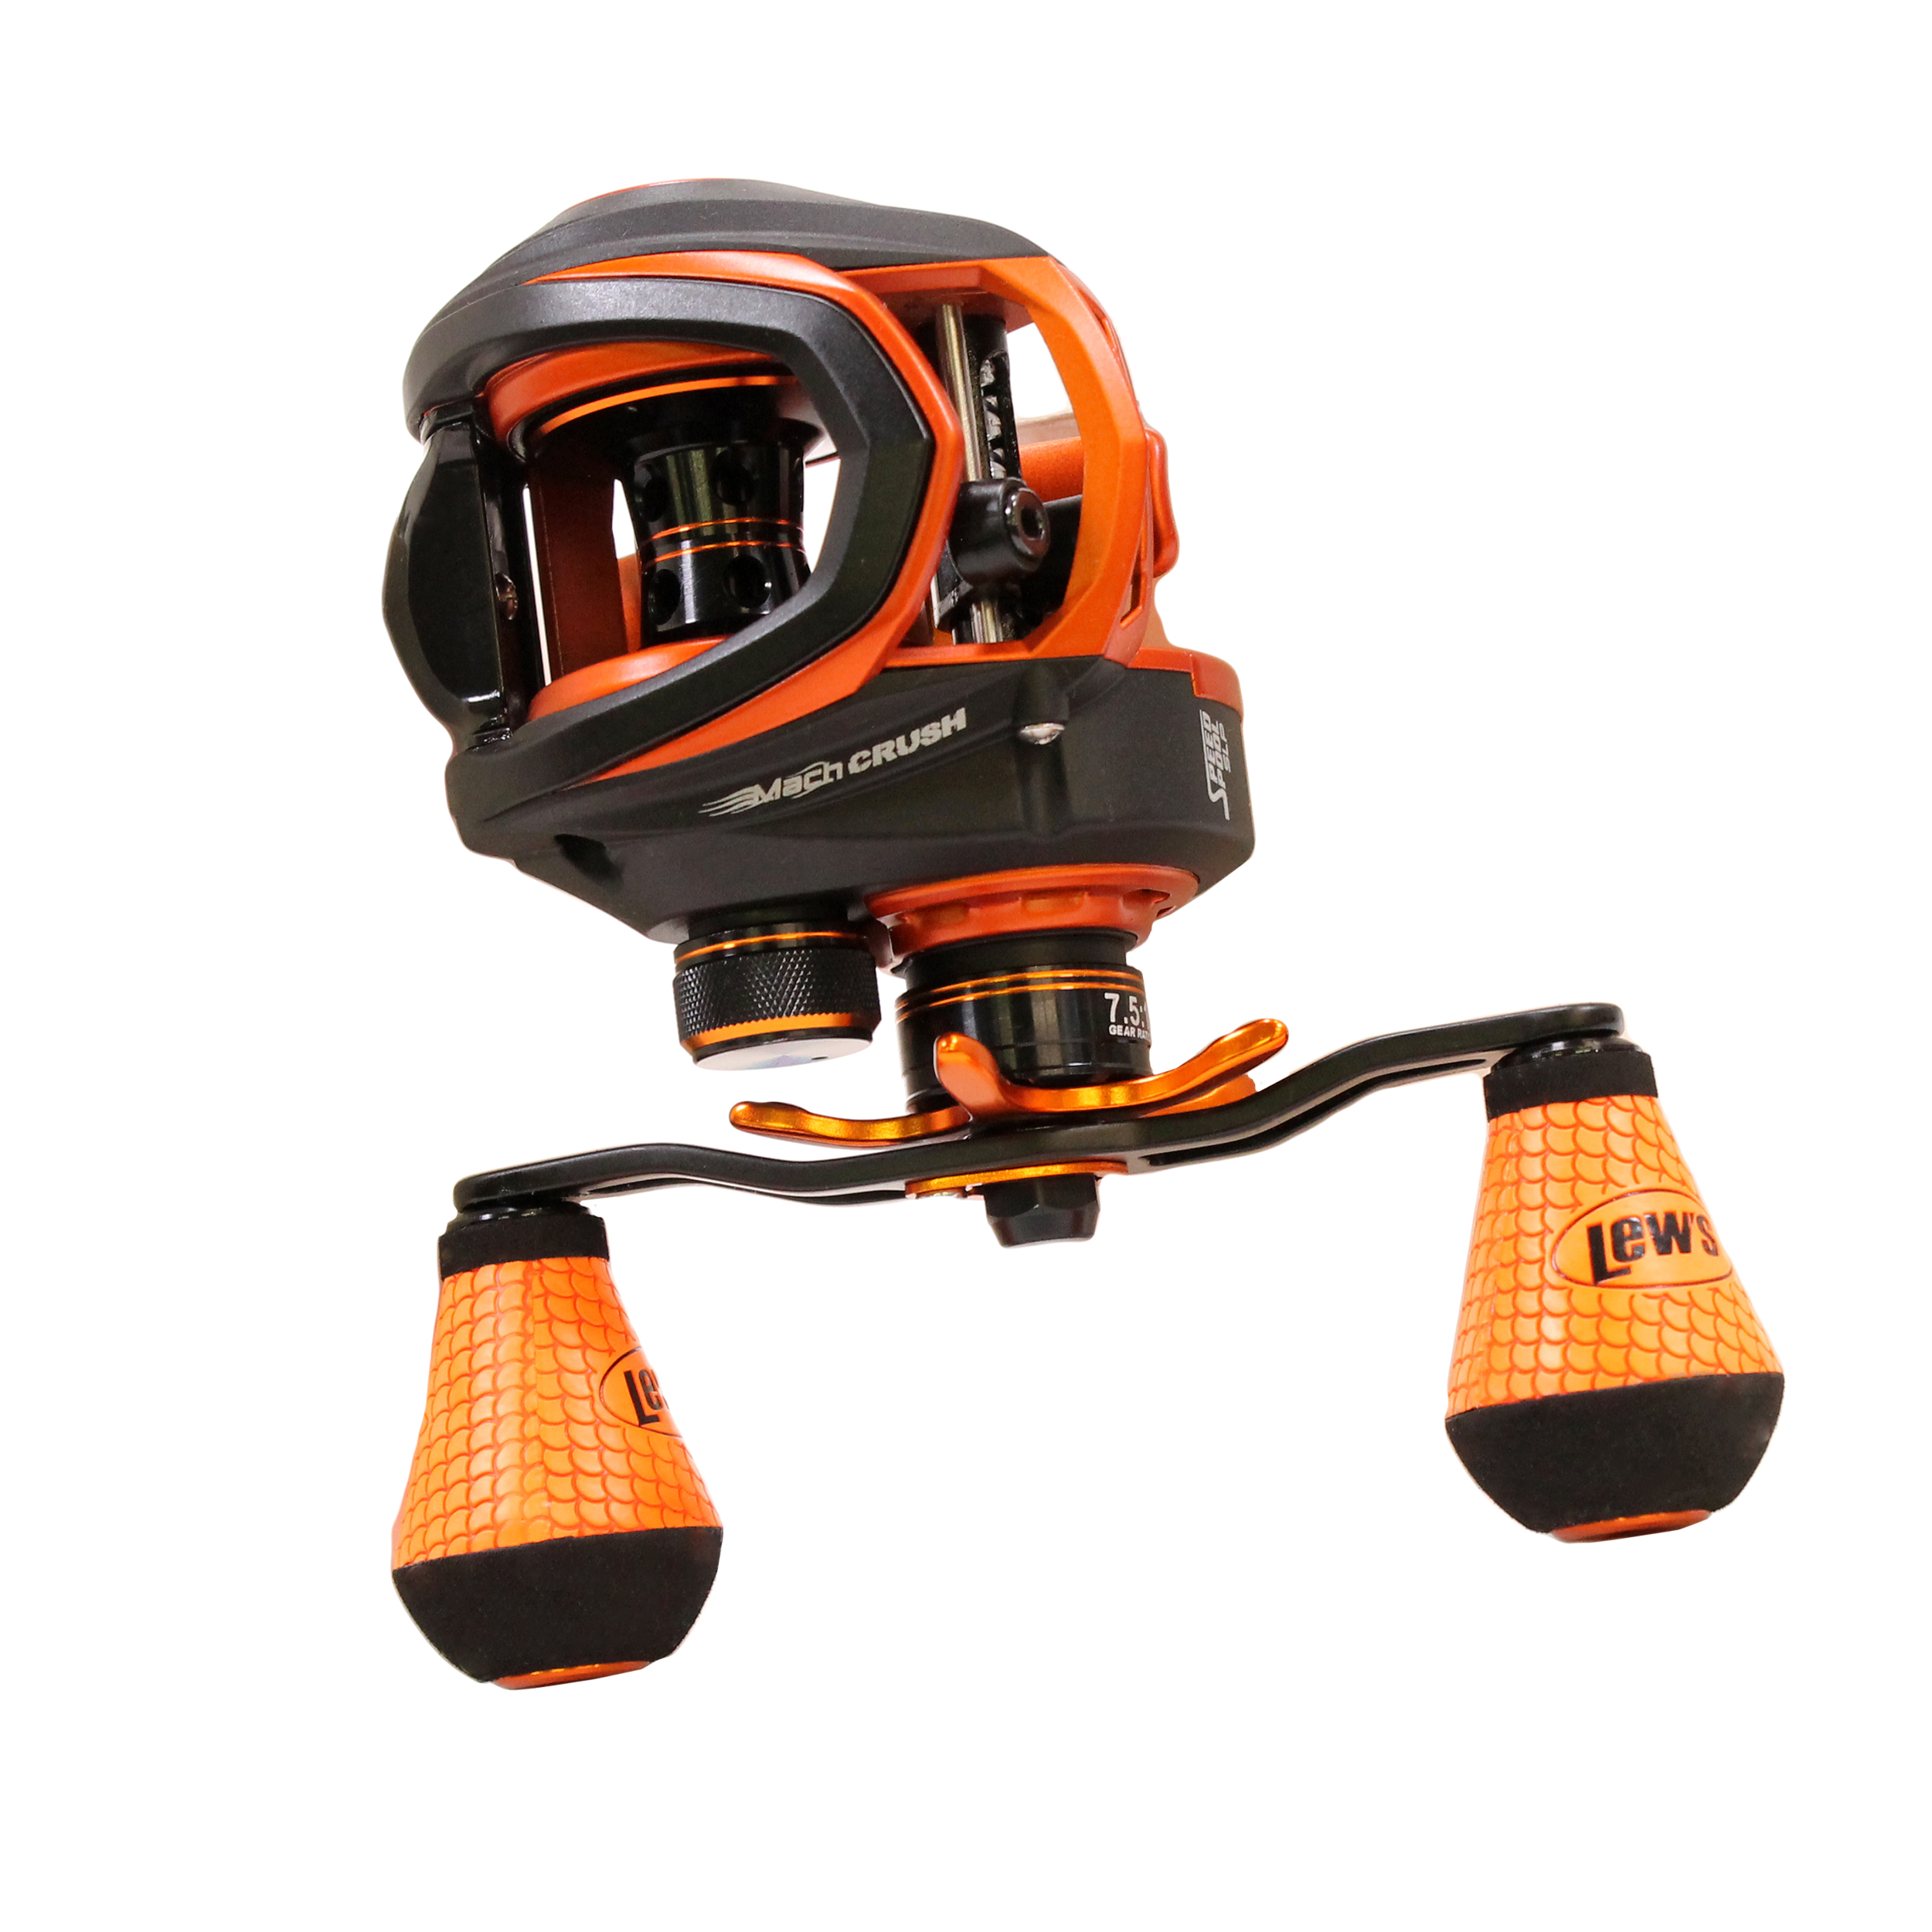 "Lews Fishing Mach Crush Speed Spool SLP Series 7.5:1 Gear Ratio, 30"" Retrieve Rate, 9+1 Bearings, Right Hand"